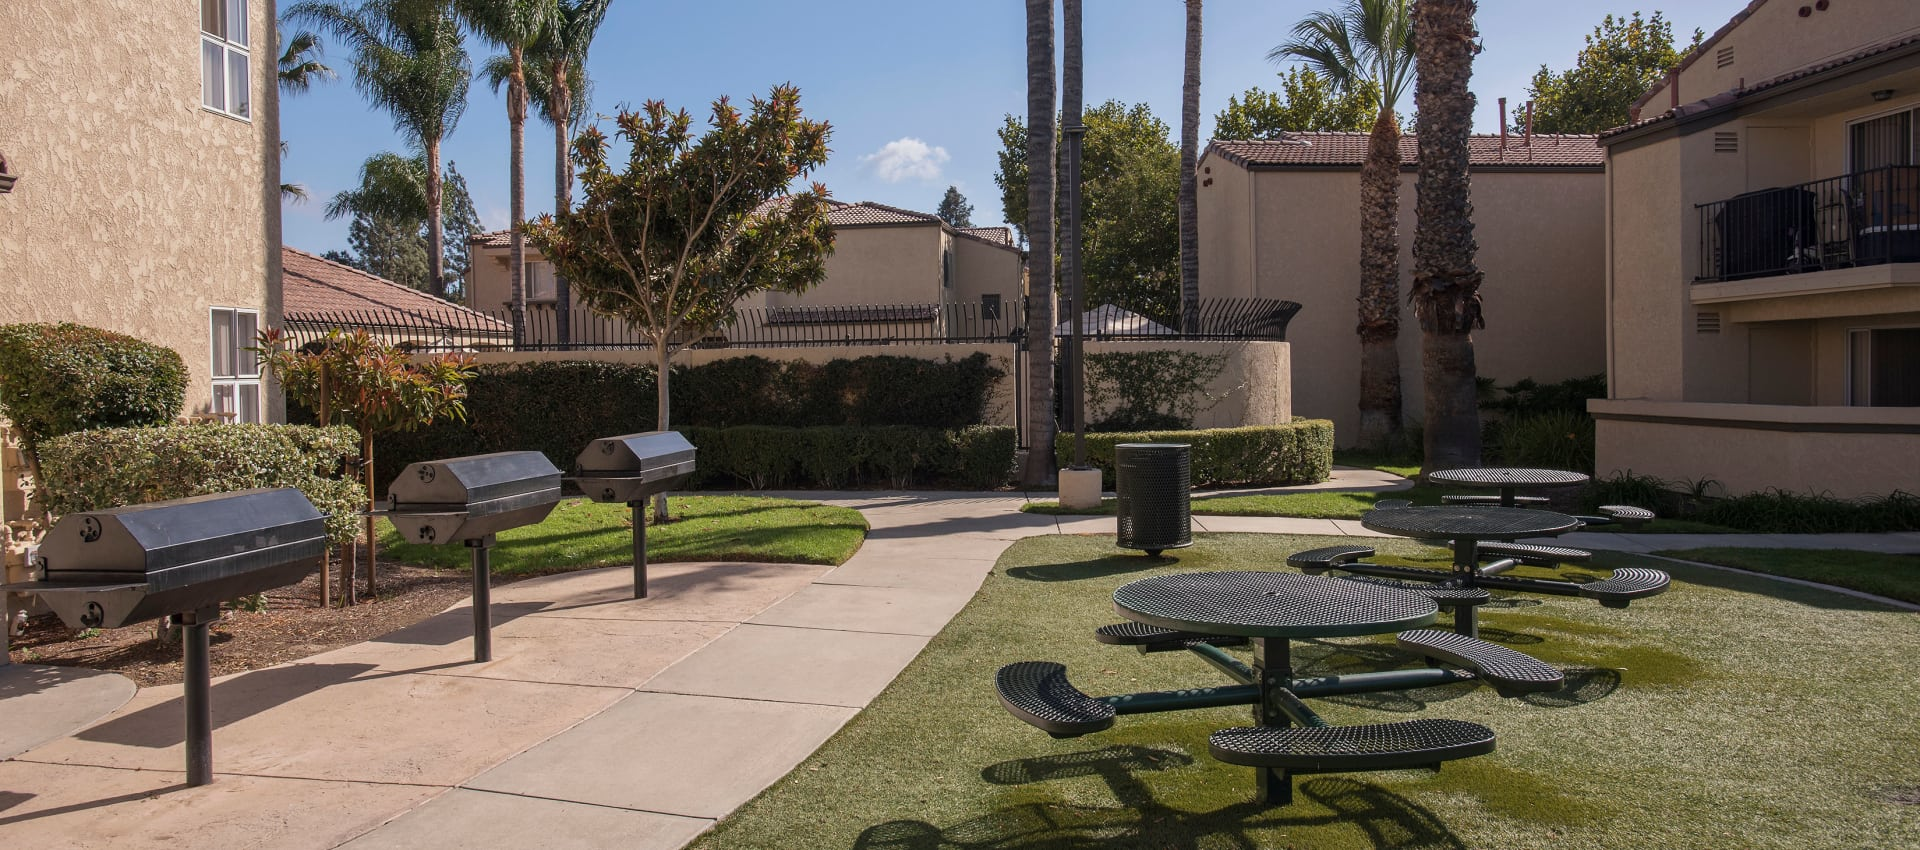 Picnic Area at Shadow Ridge Apartment Homes in Simi Valley